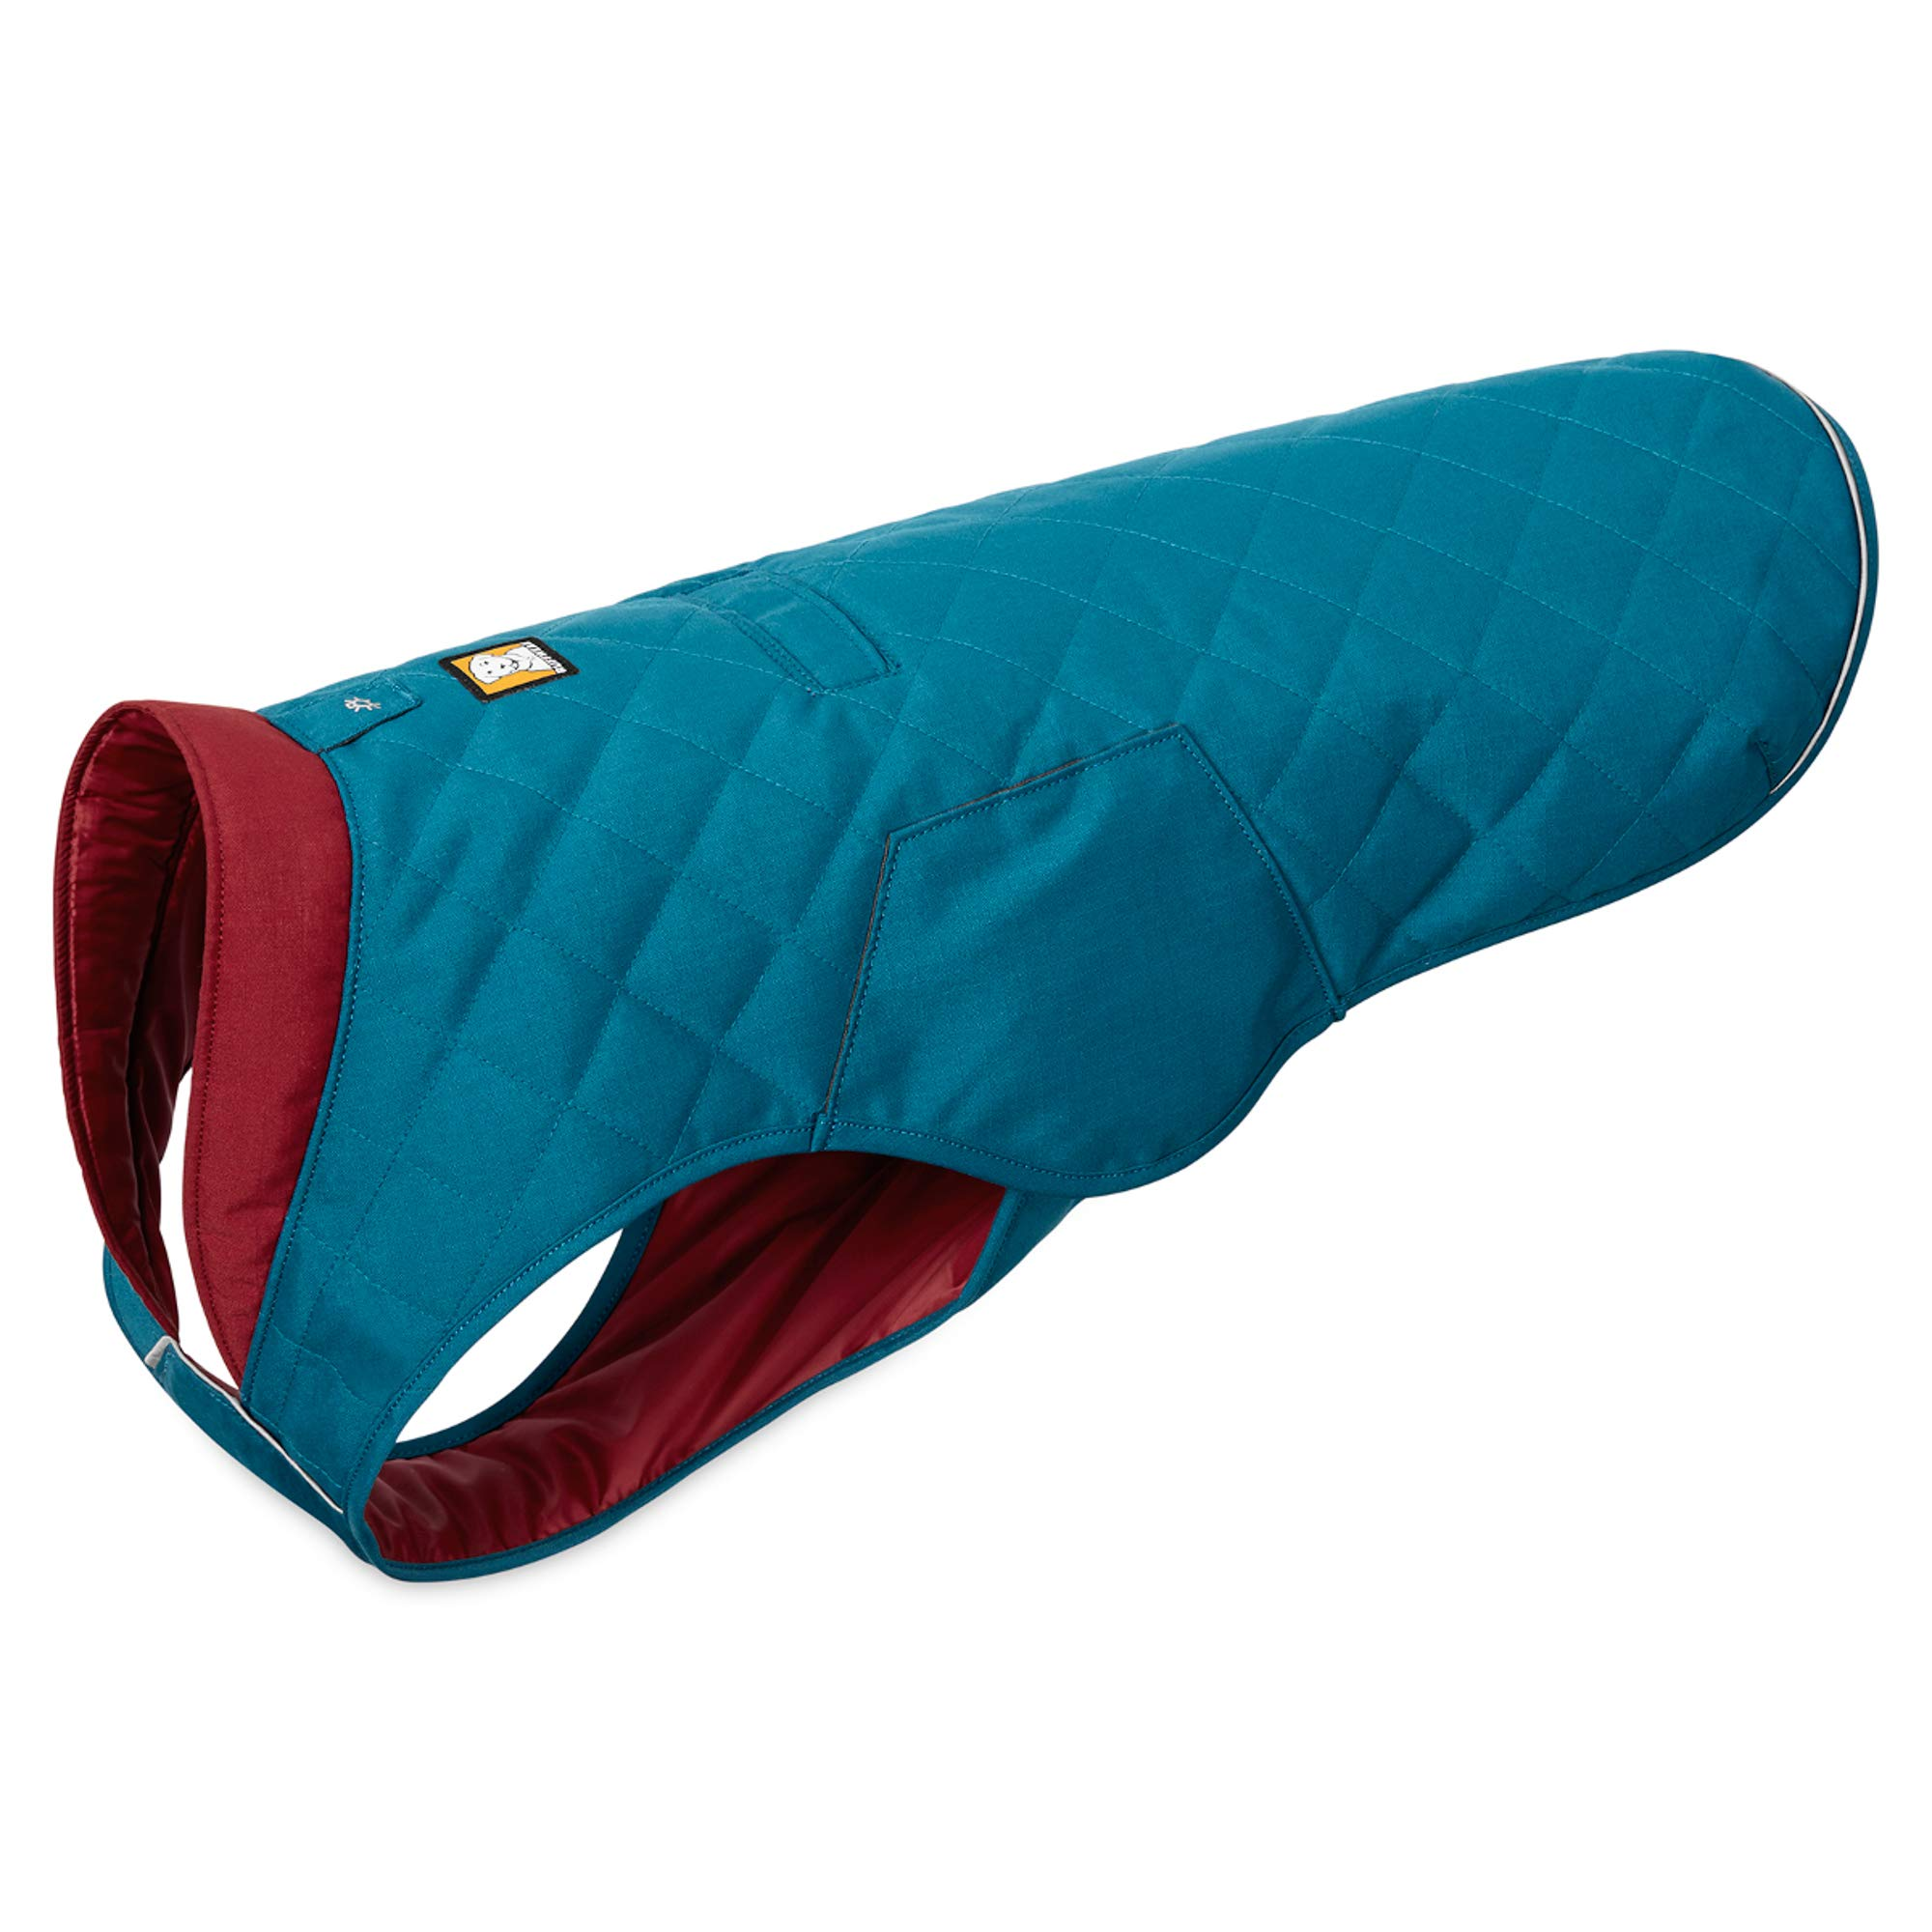 RUFFWEAR - Stumptown Insulated, Reflective Cold Weather Jacket for Dogs, Metolius Blue, Small